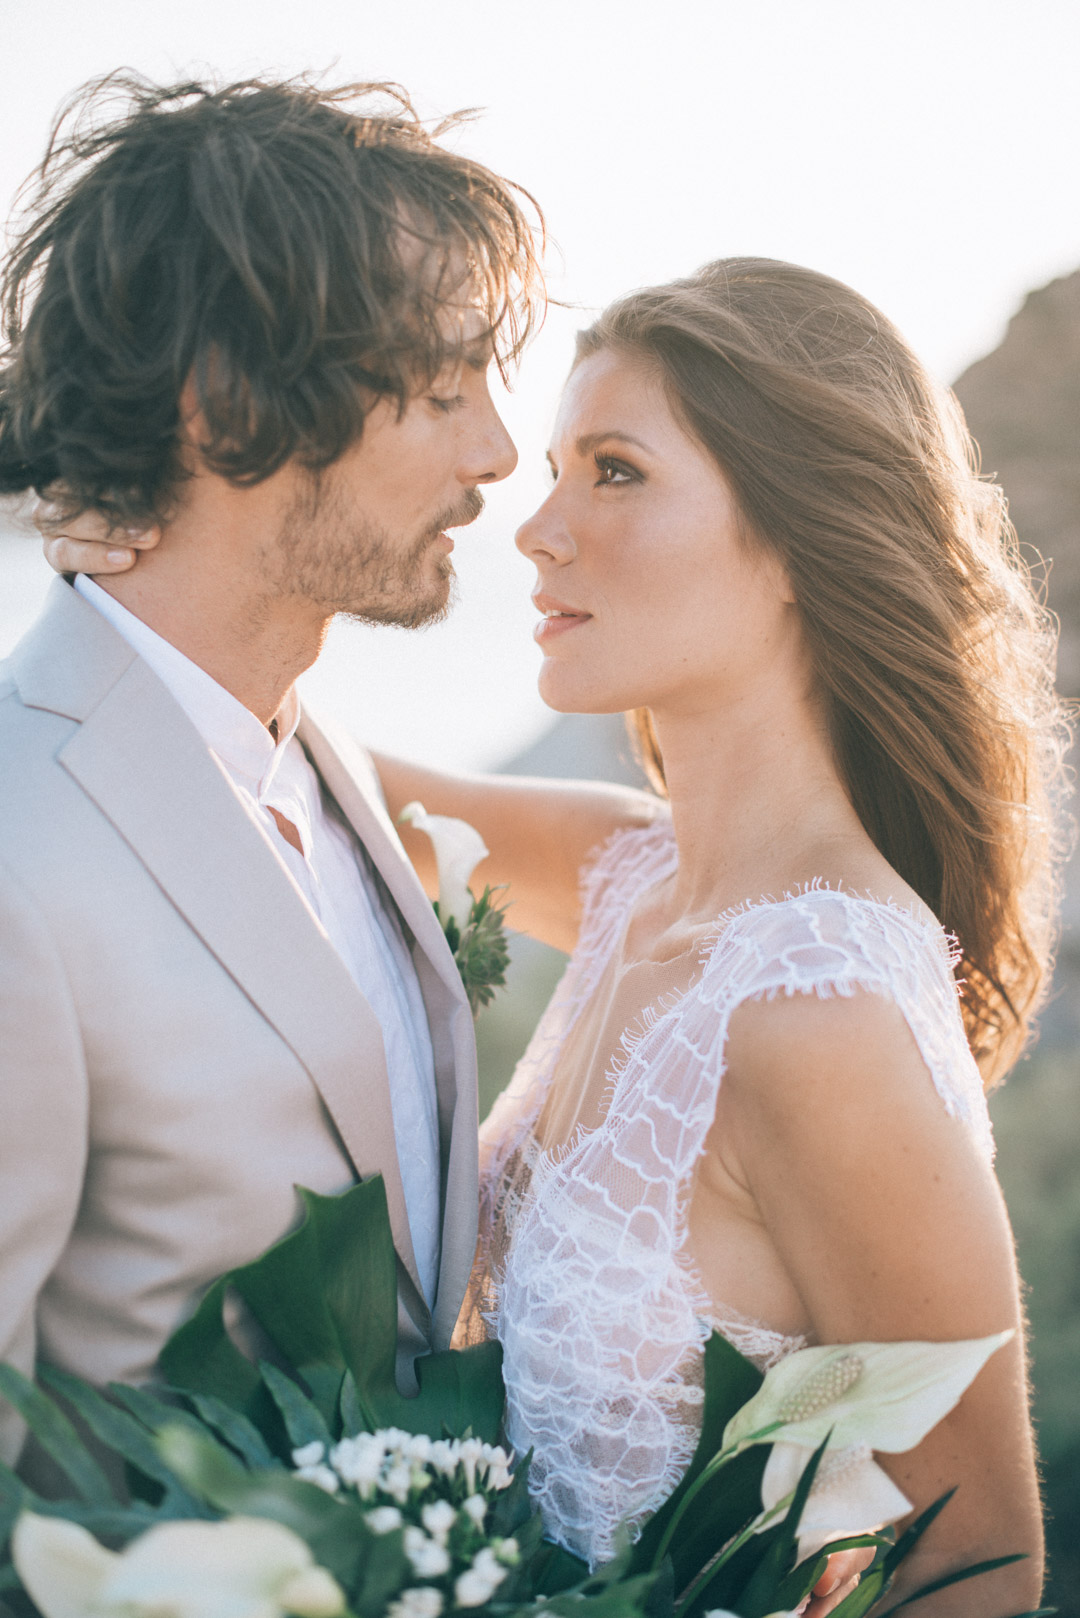 Bohemian-Cliffside-Elopement-in-Greece-with-a-tropical-touch